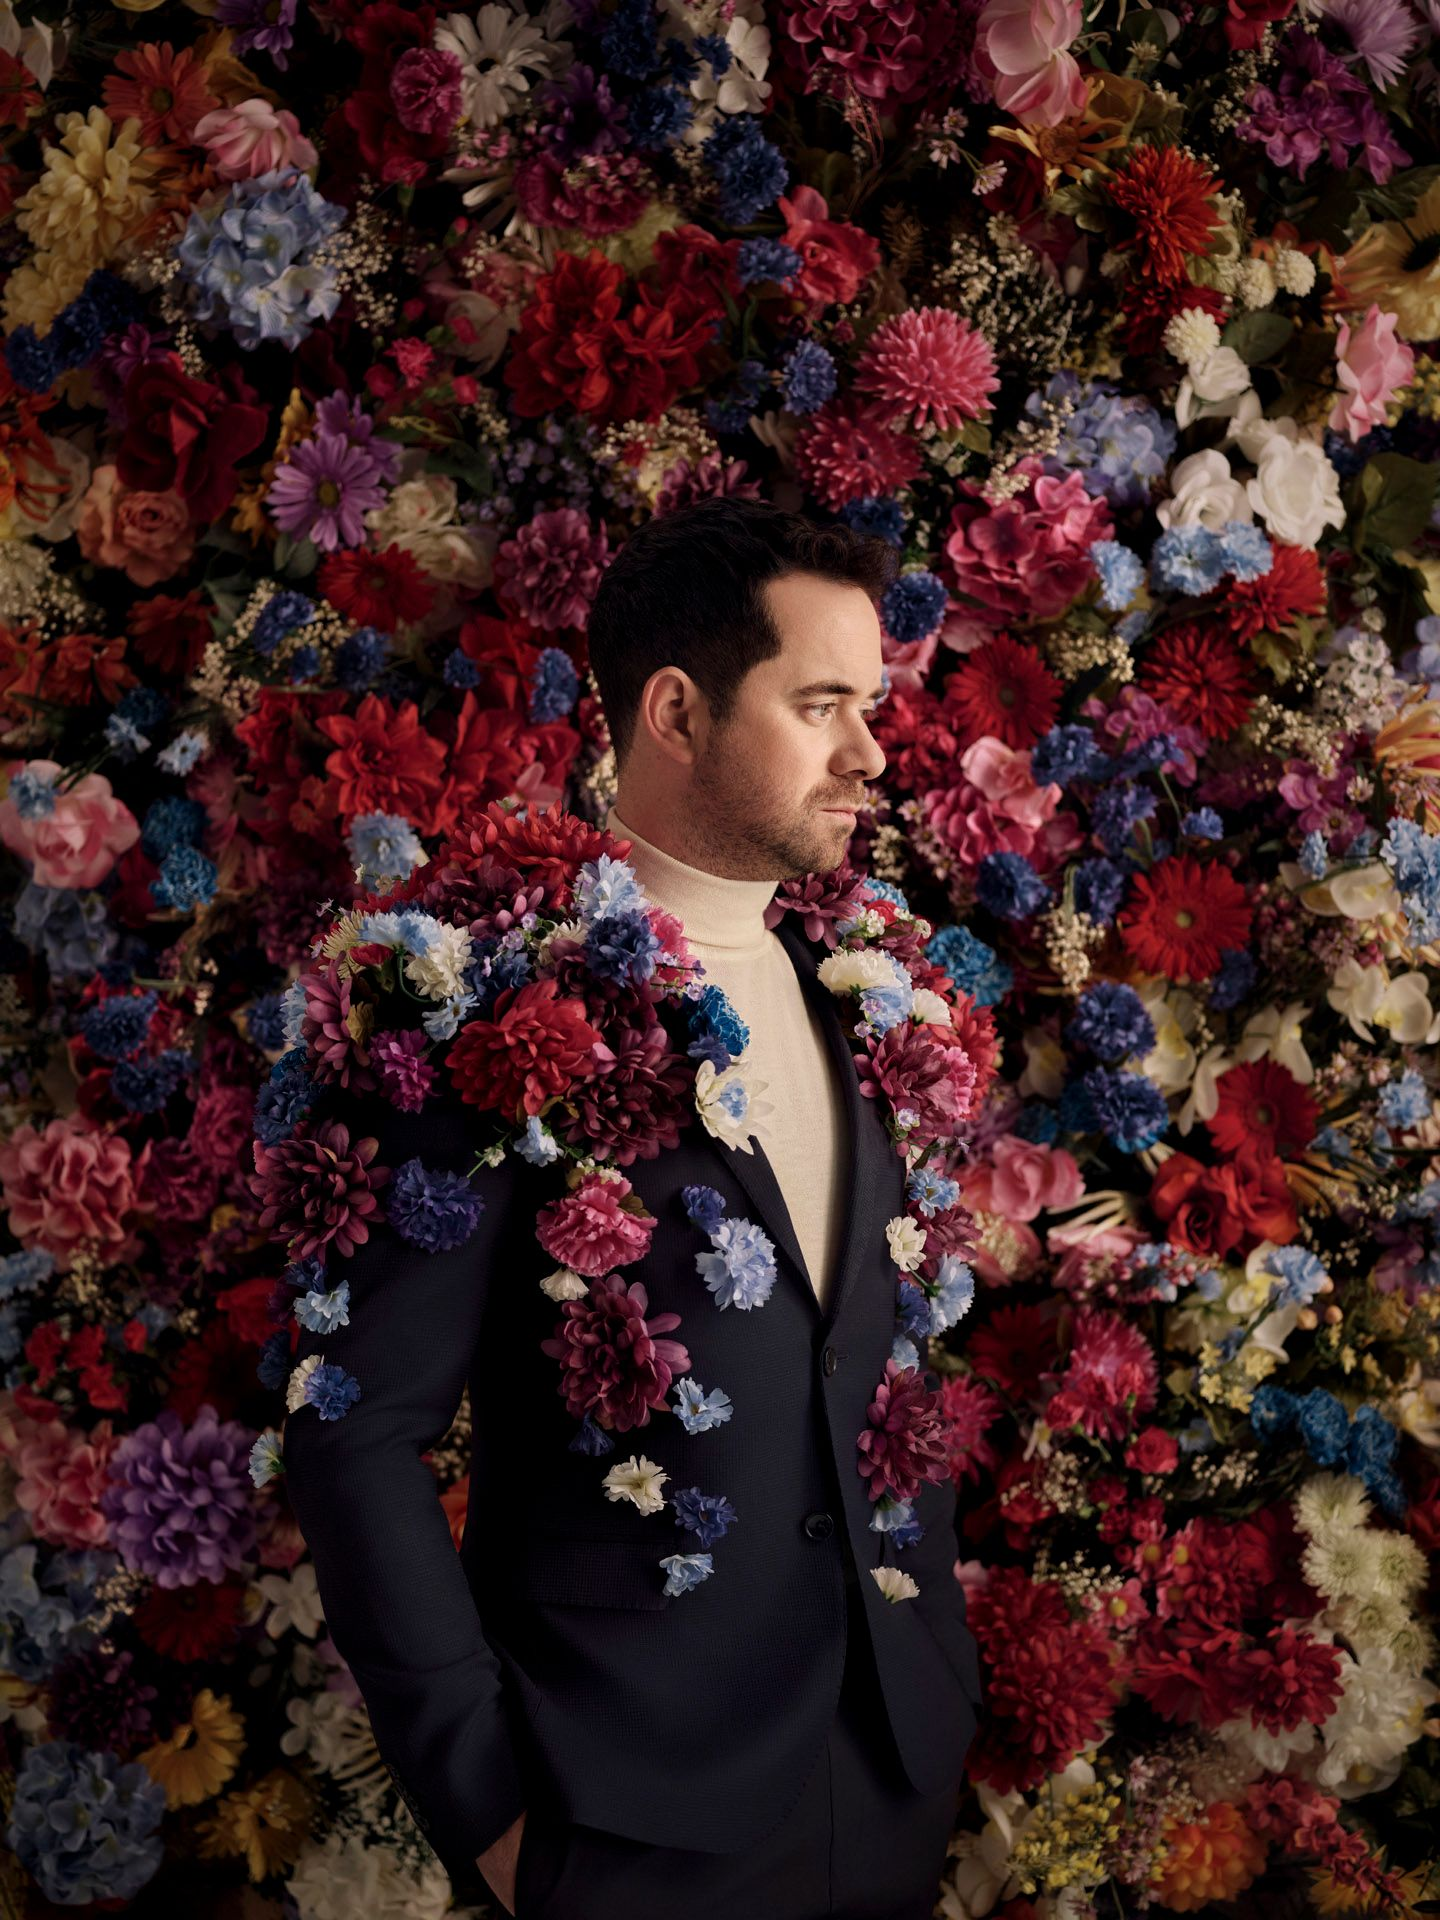 singer Jean-Michel Blais wearing suit jacket covered in fake flowers with fake flower covered wall in the background photographed by Maxyme G Delisle with artistic direction and styling by Studio TB